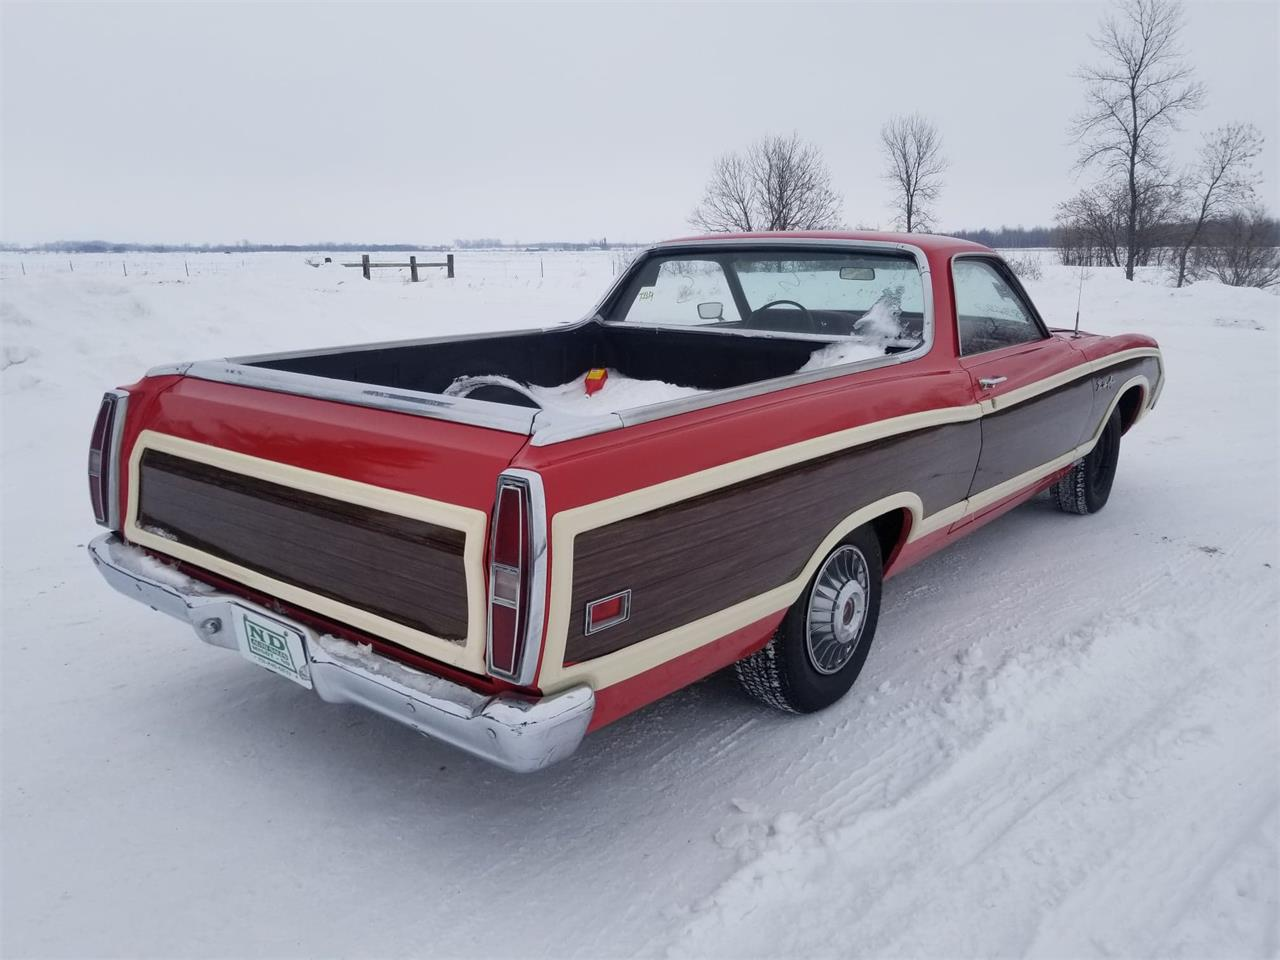 Large Picture of '70 Ford Ranchero - $10,500.00 - PM5R